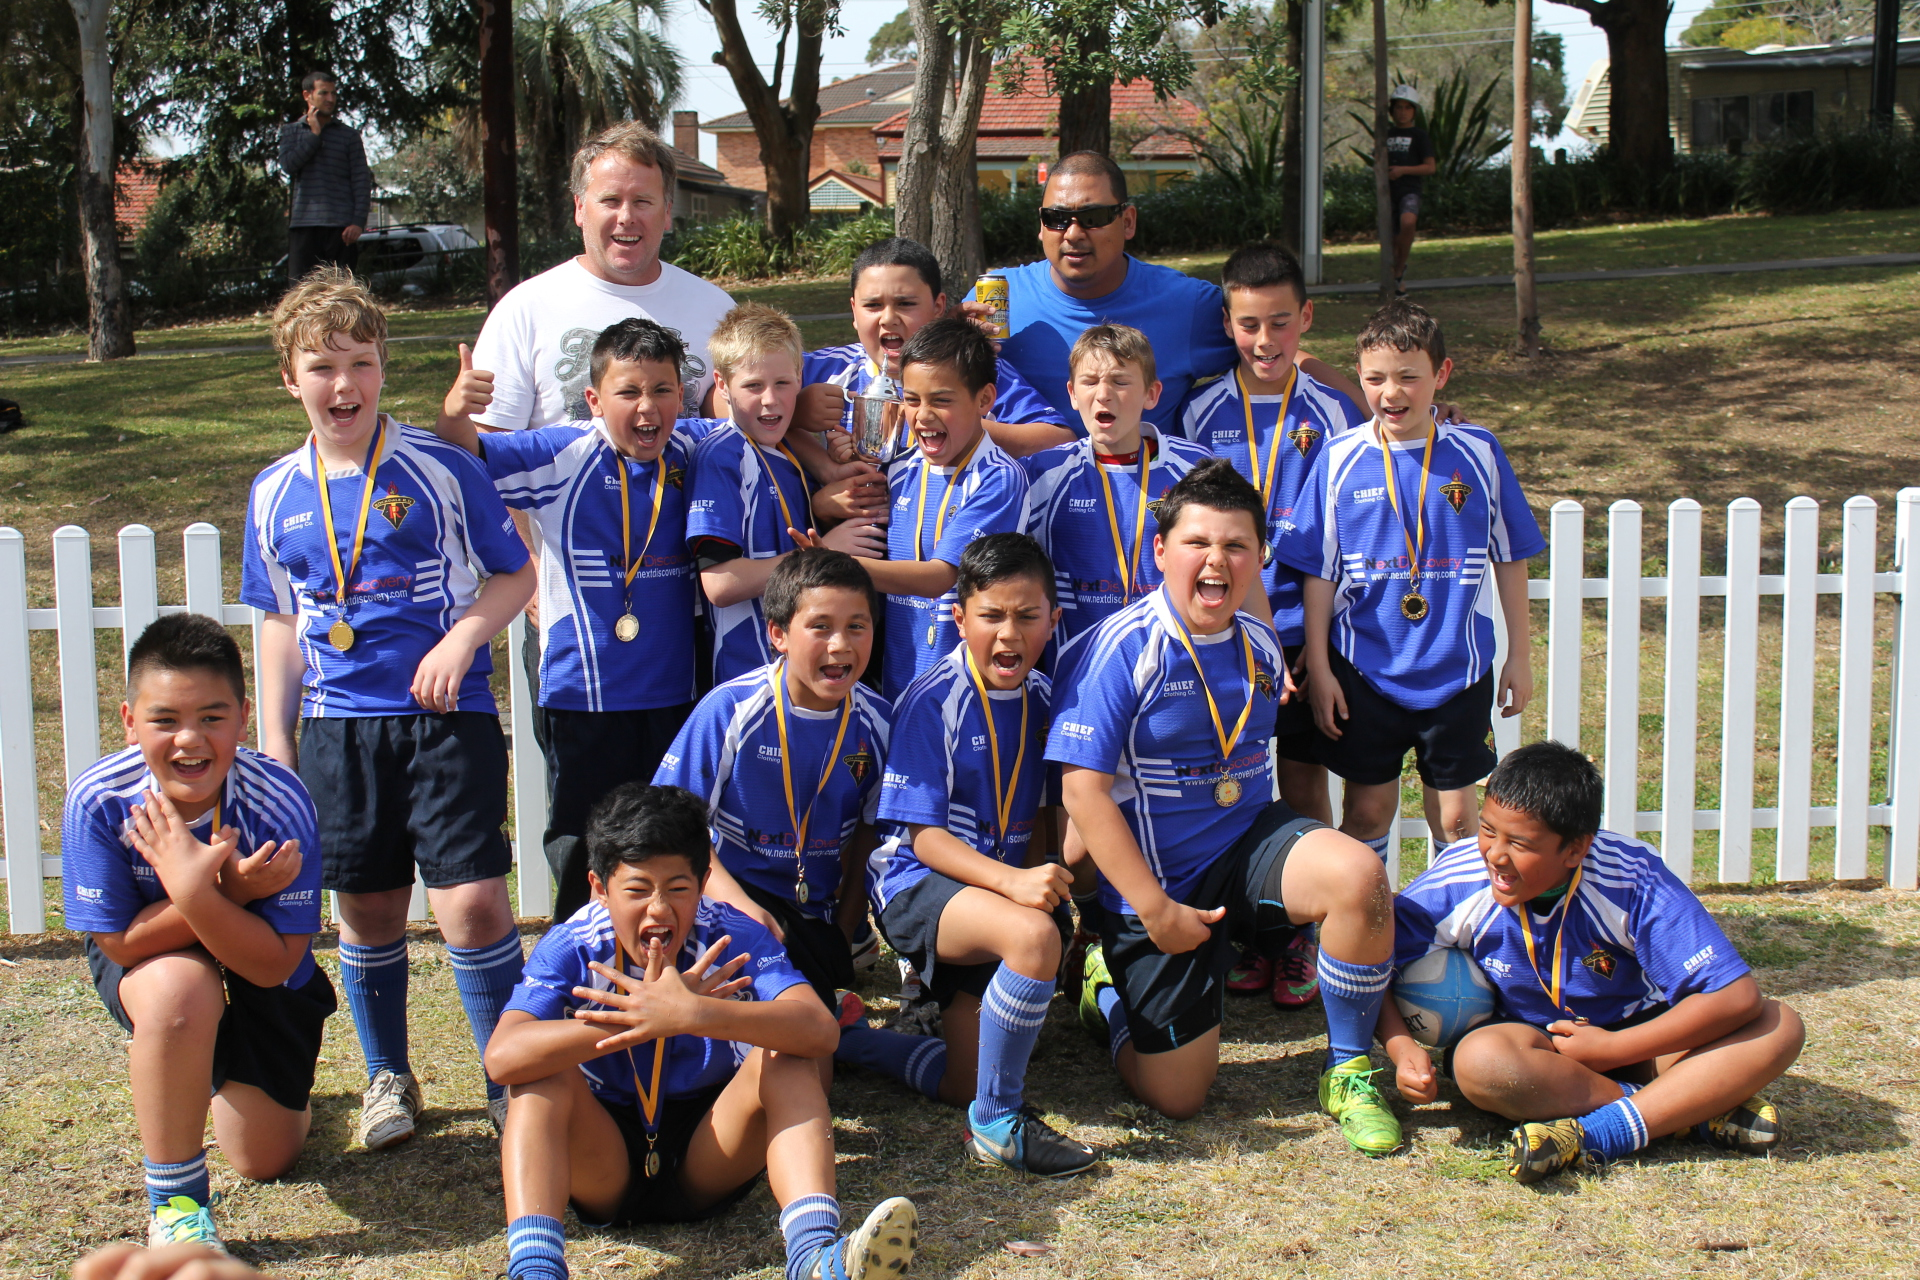 2013 Under 10 SJRU Saturday Comp Champions